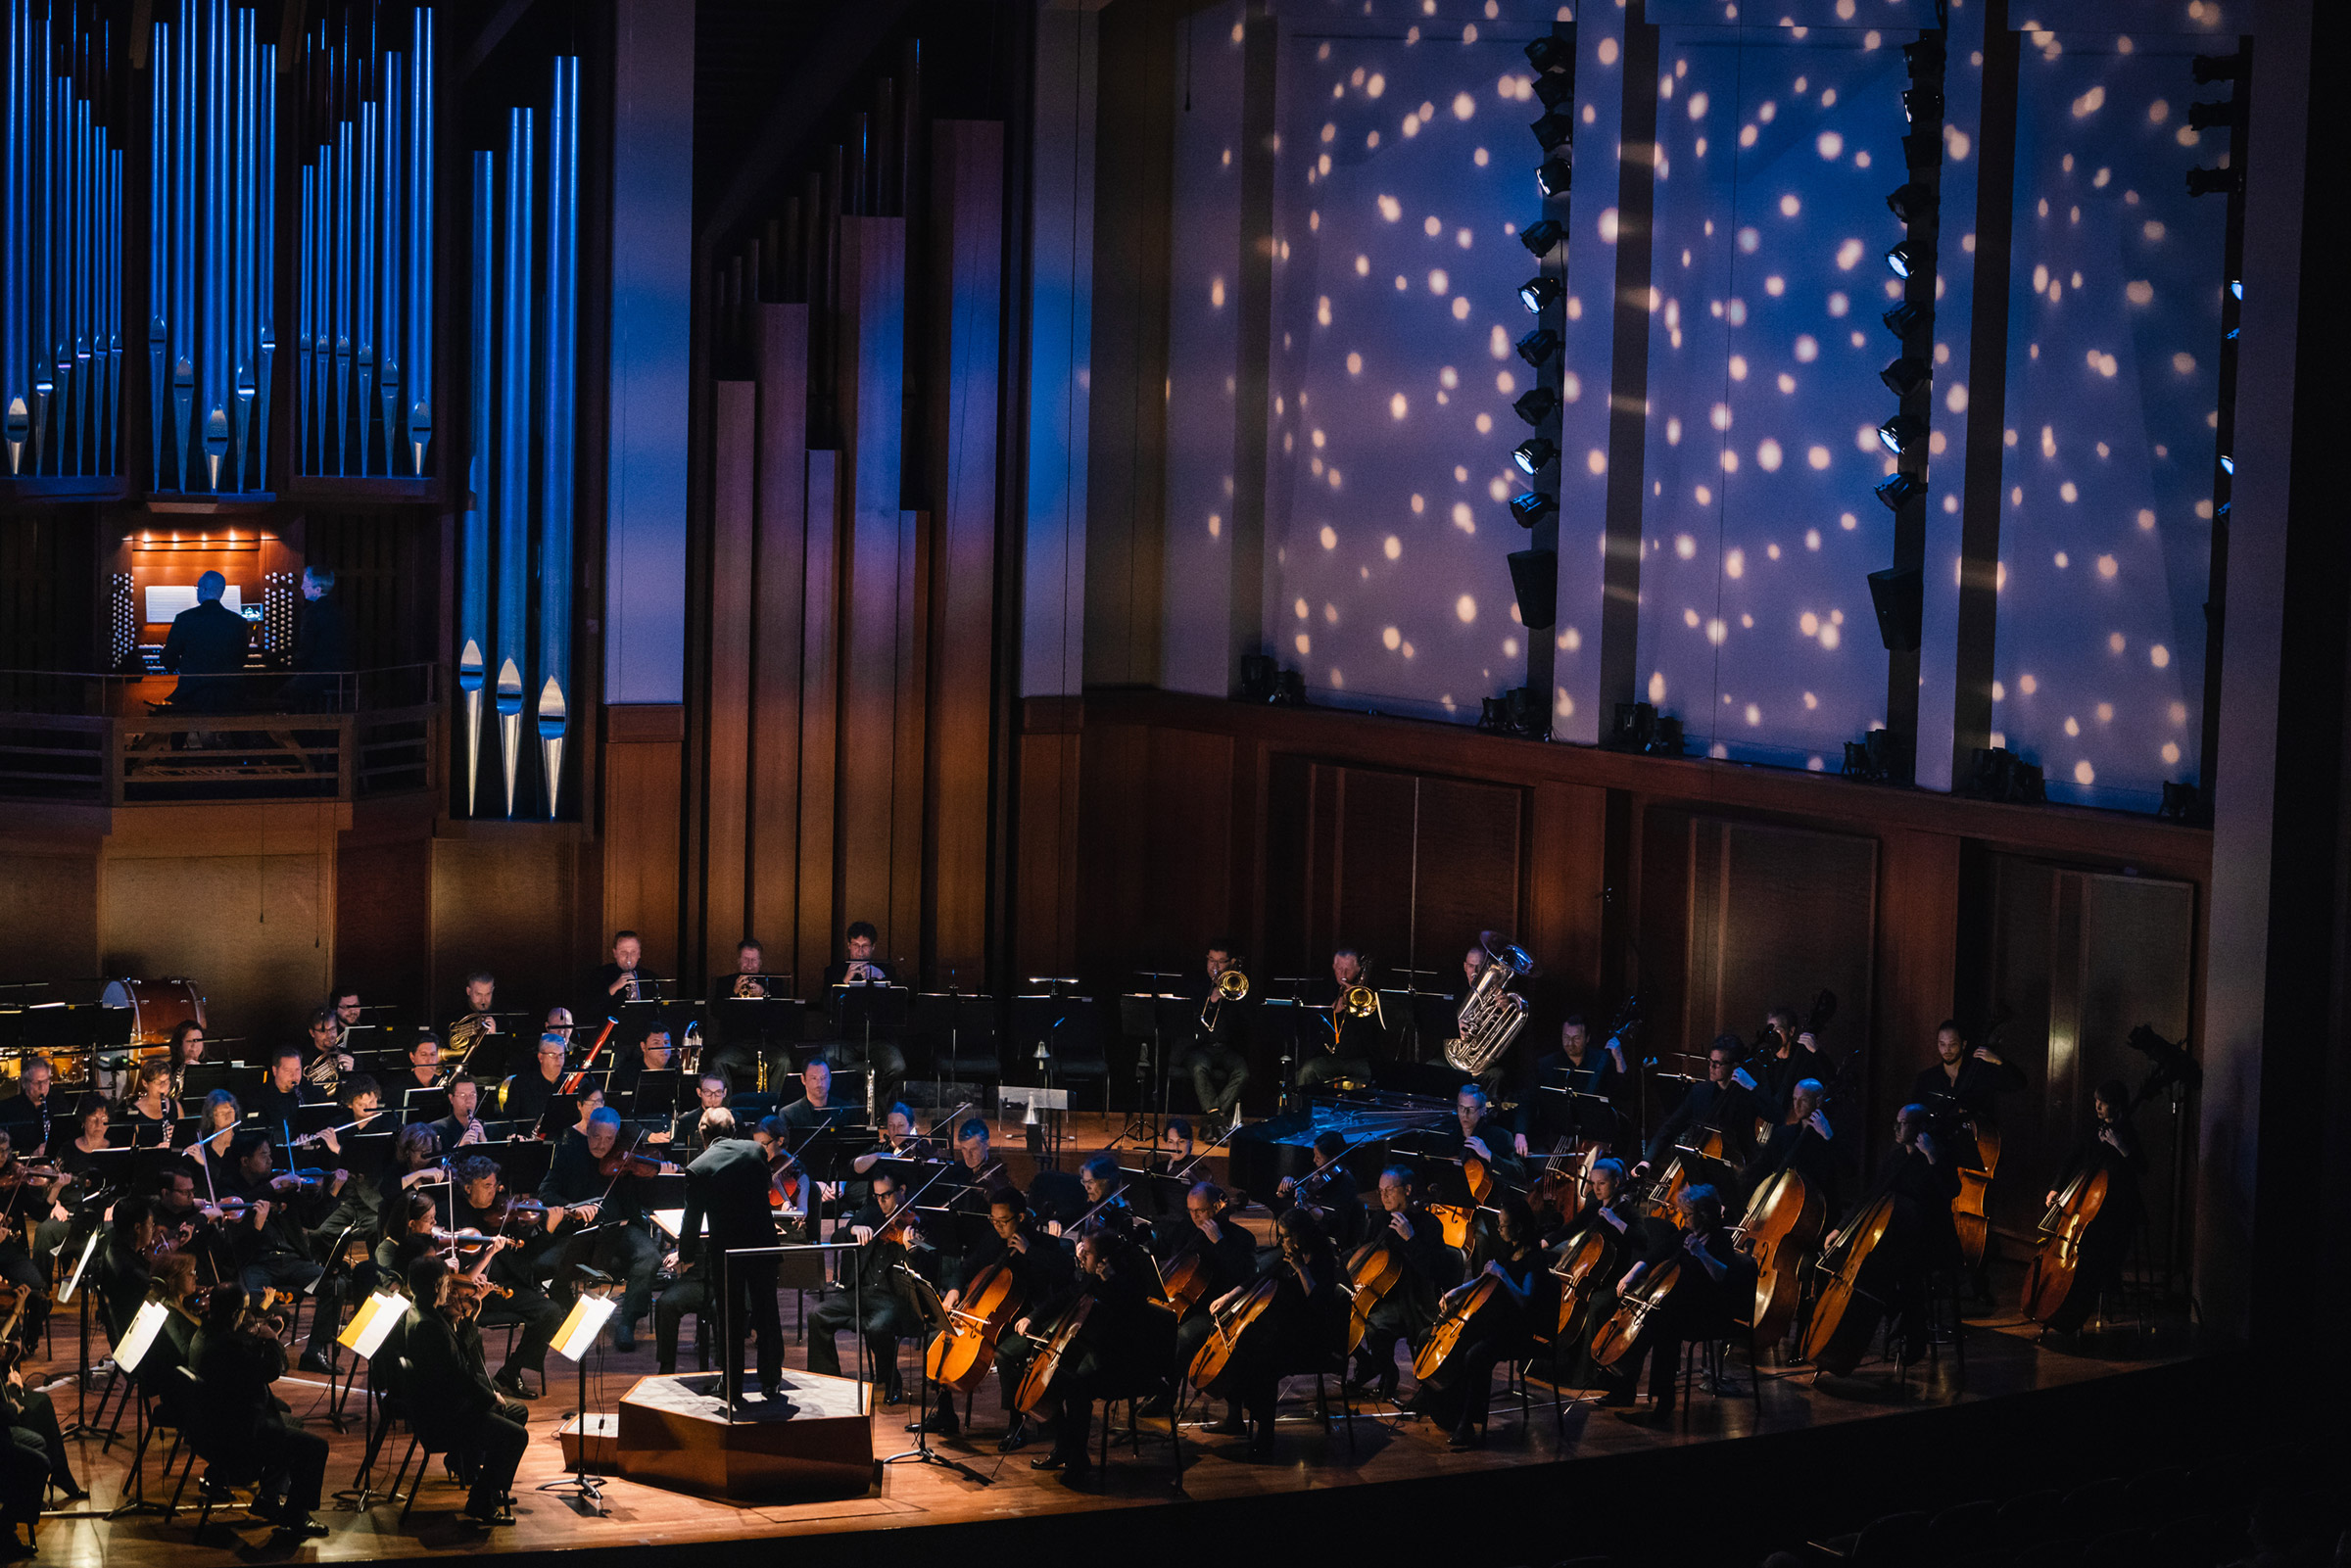 seattle-symphony-orchestra-brandon-patoc-colorful-lighting-01.JPG